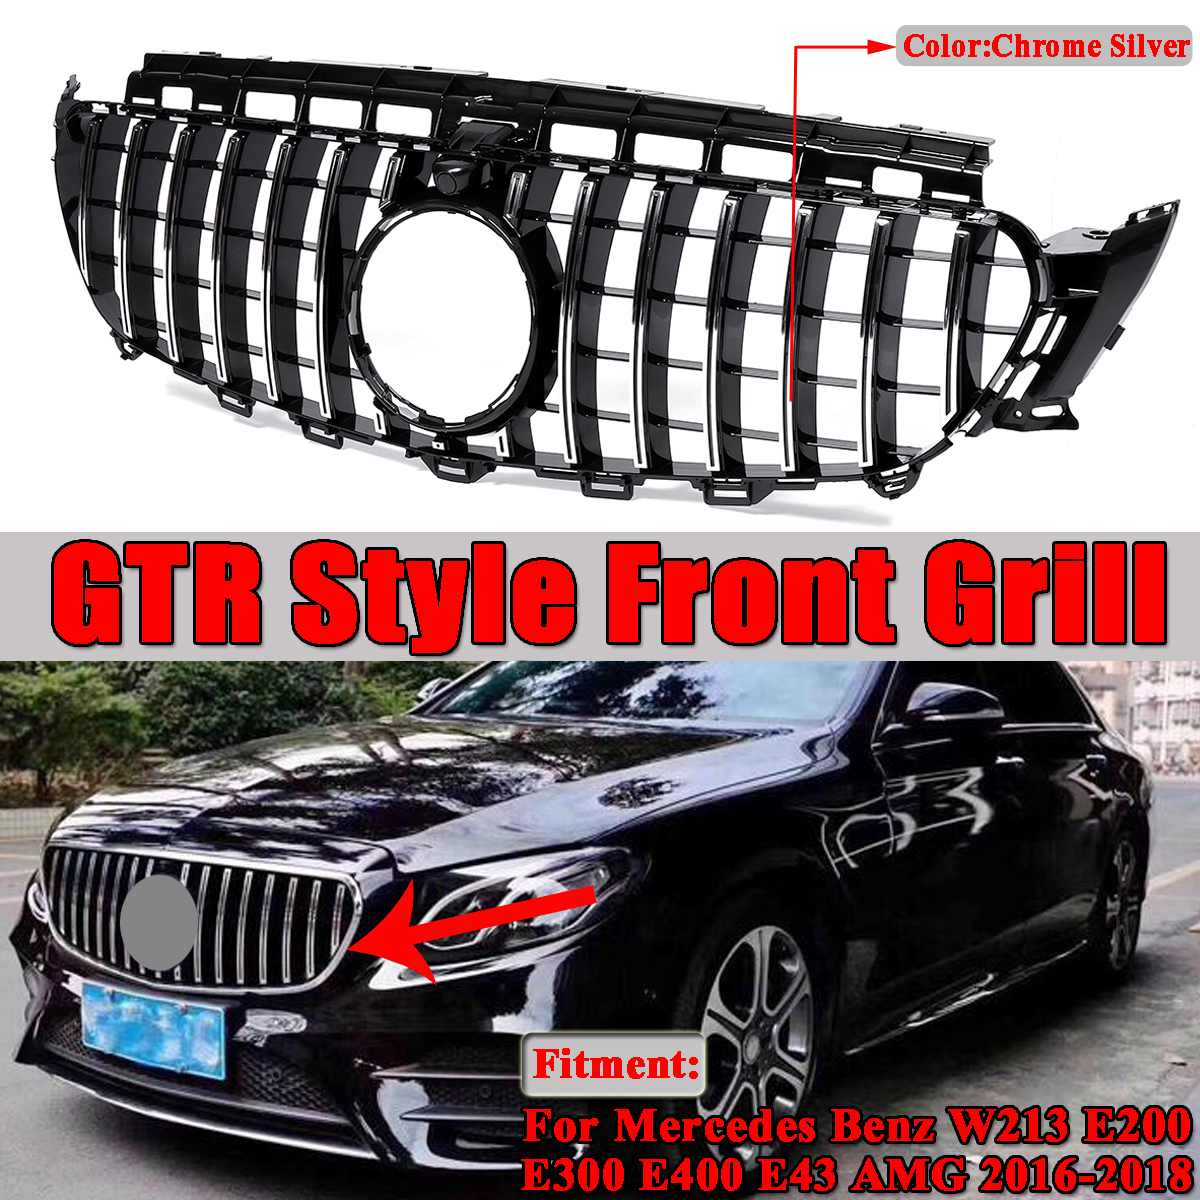 1x GT R / Diamond Style W213 Grlil Car Front Grille For Mercedes For Benz W213 E200 E300 E400 E43 For AMG 2016 2017 2018 2019